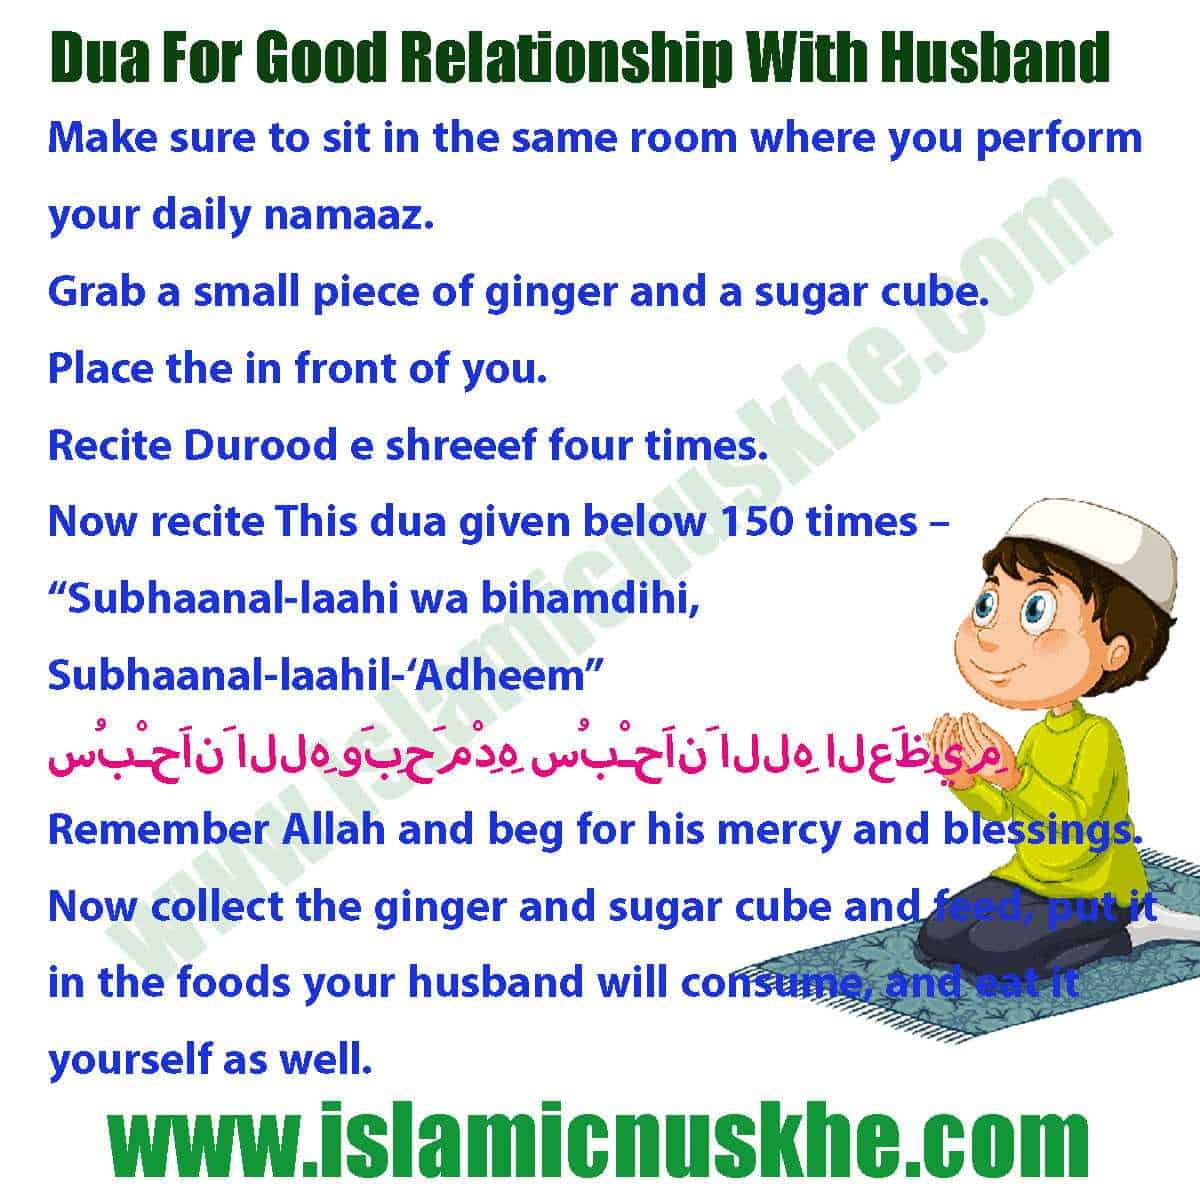 Here is Dua For Good Relationship With Husband Step by Step